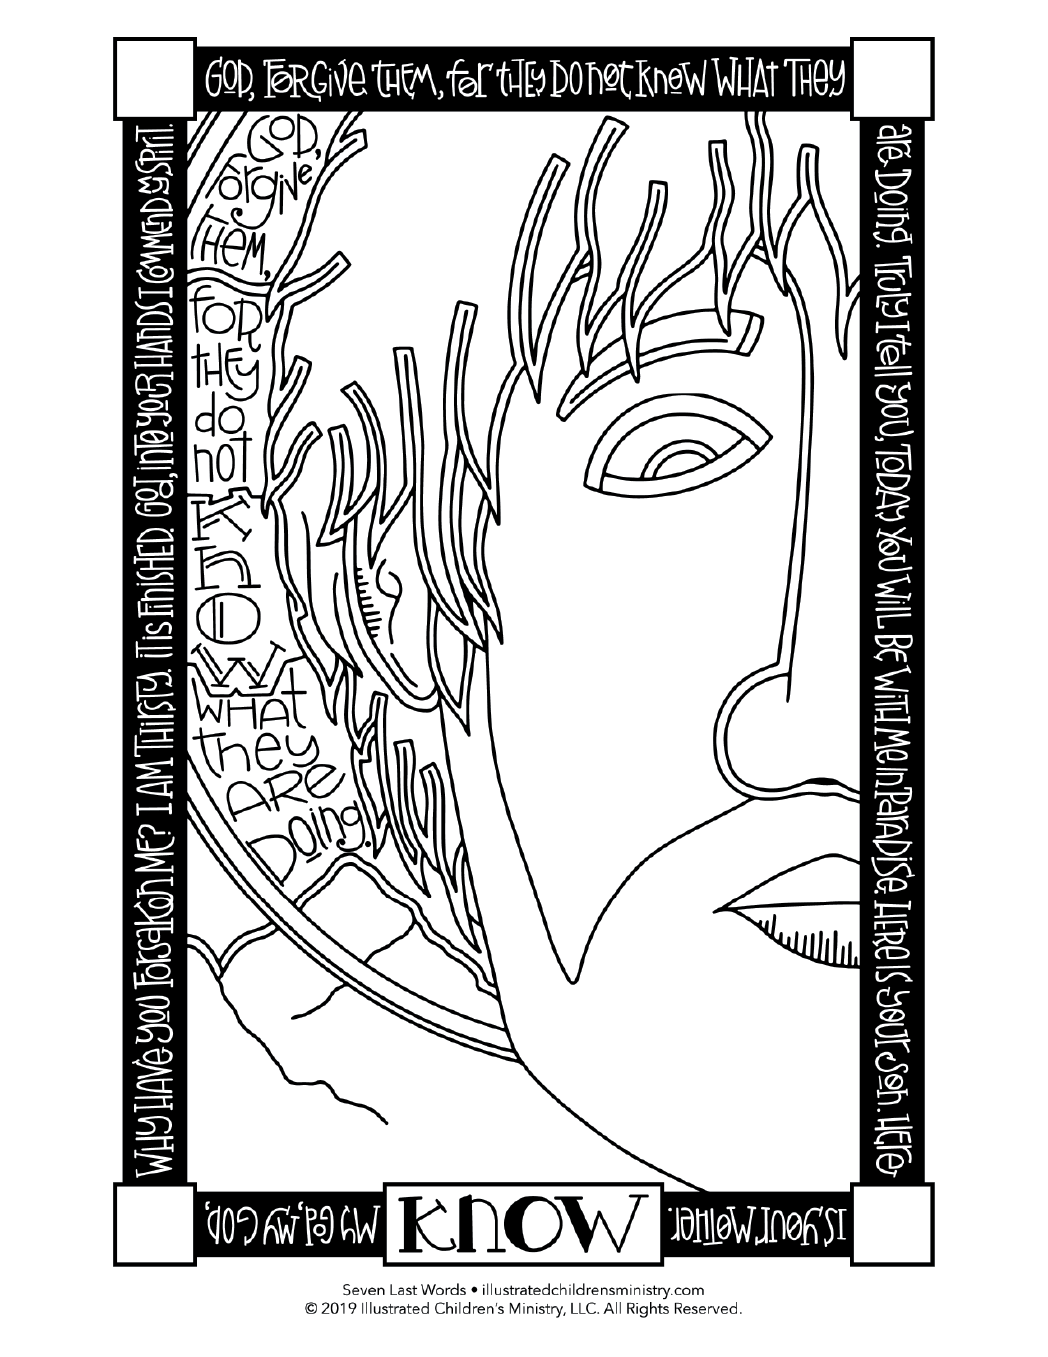 Seven Last Words coloring page simple - Know